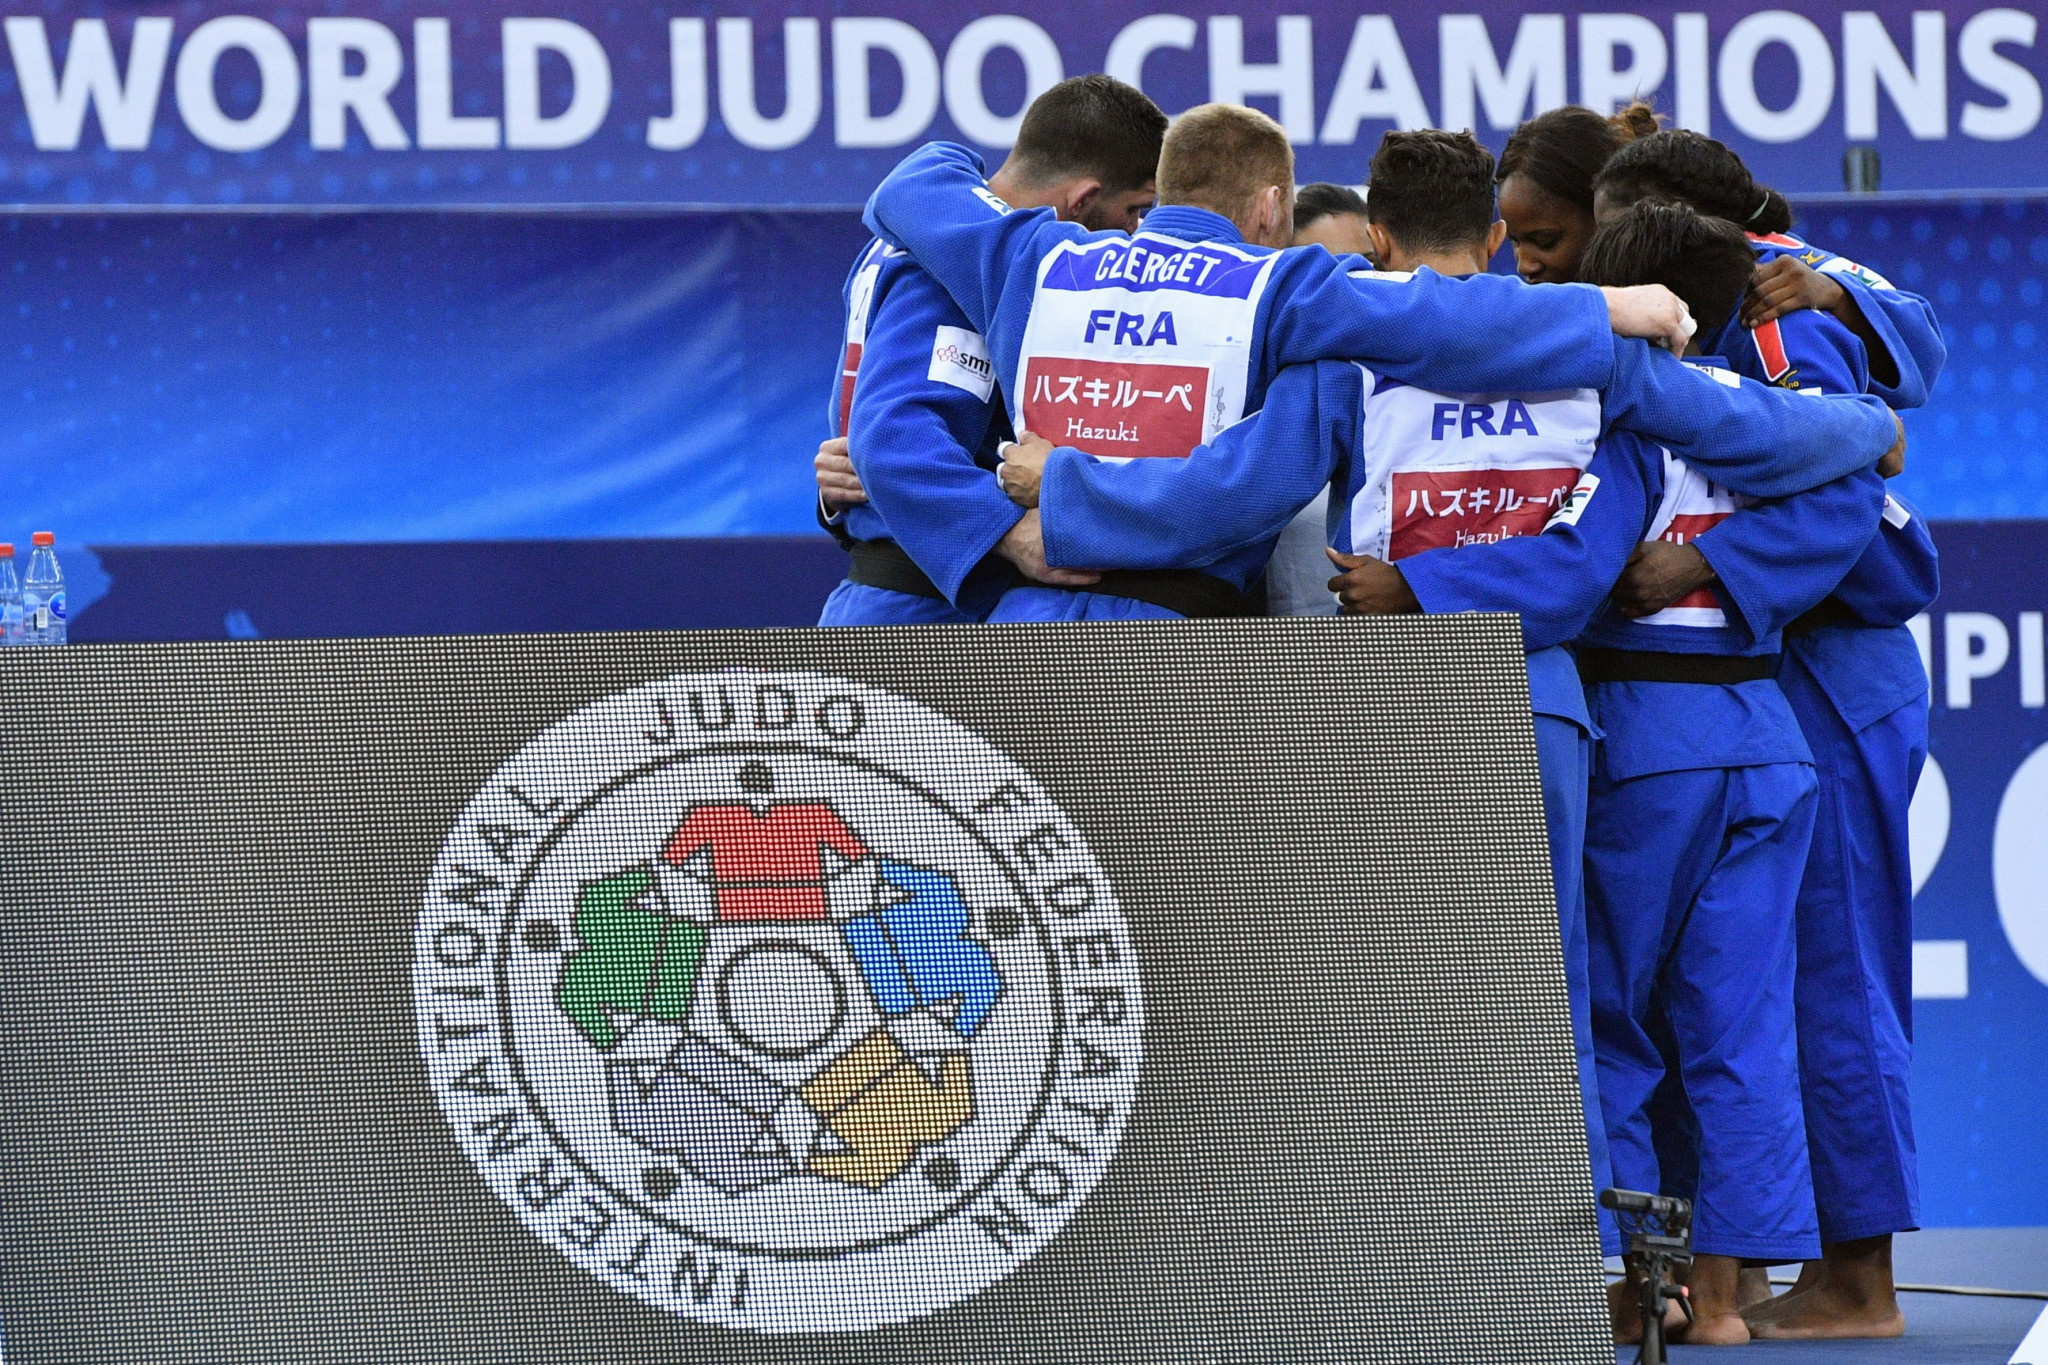 Japan aiming for hat-trick of mixed team titles at IJF World Championships